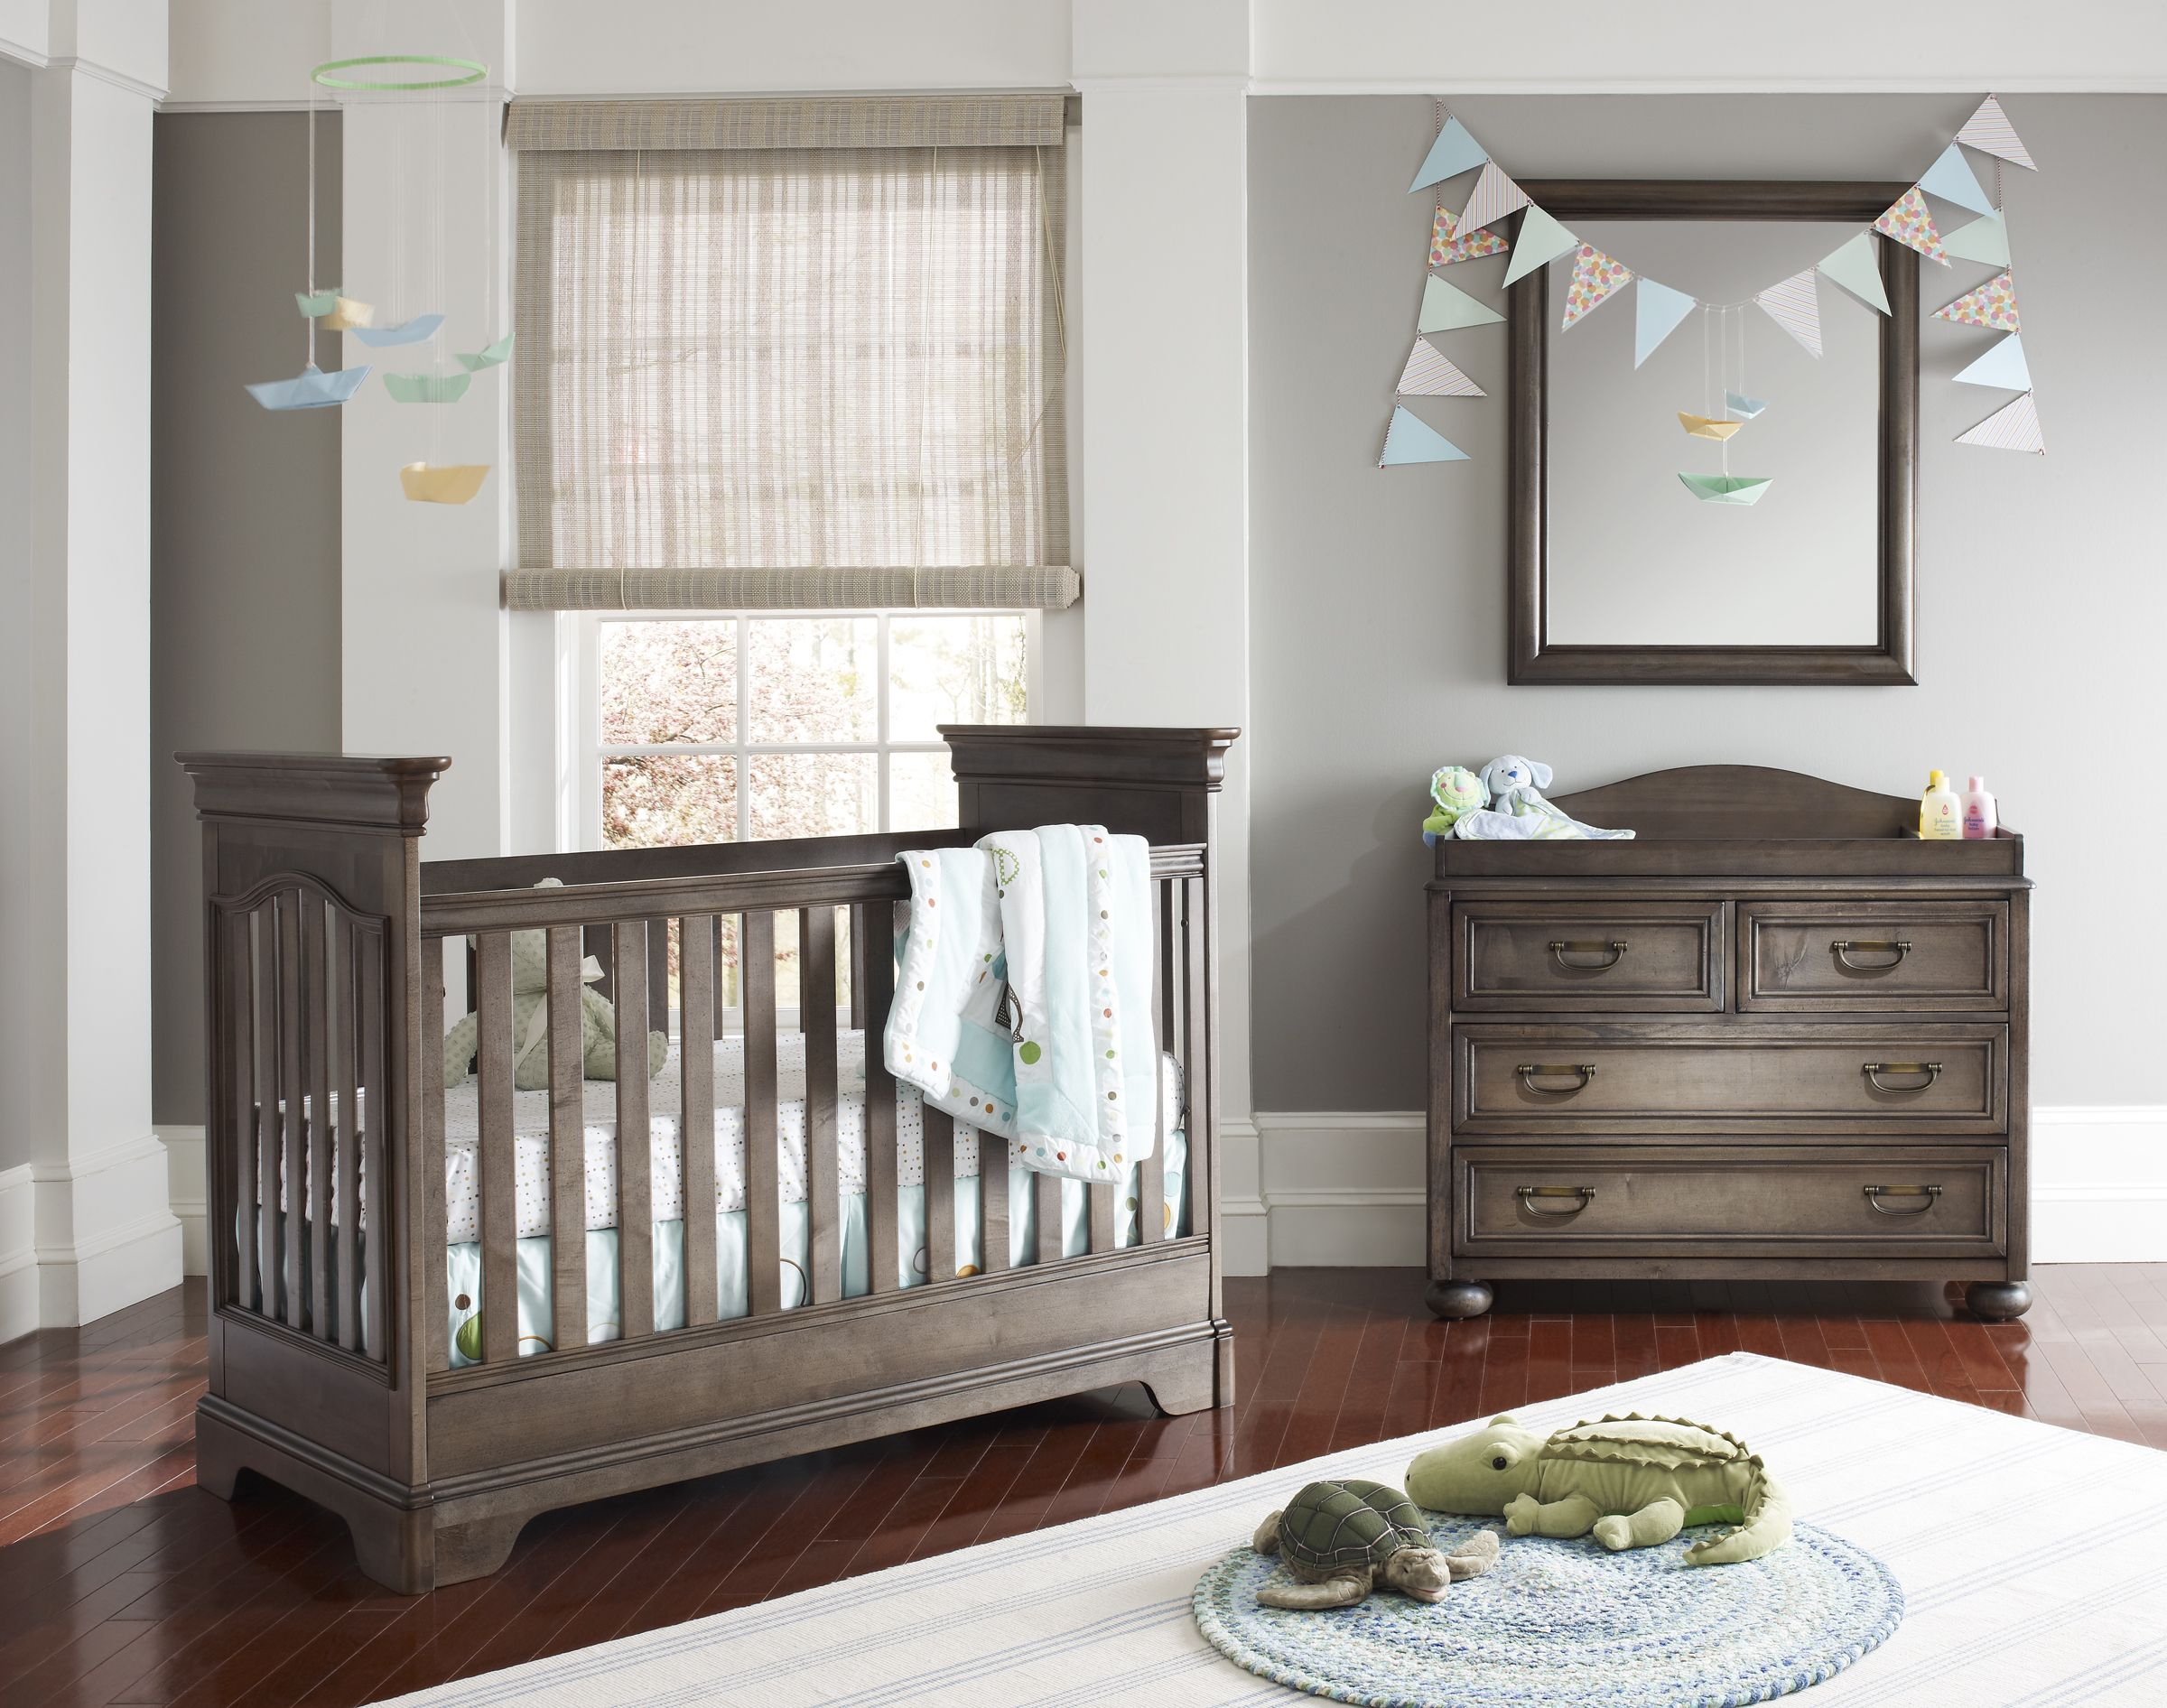 A Tribute Crib in our brand new Antique Slate gray wood tone